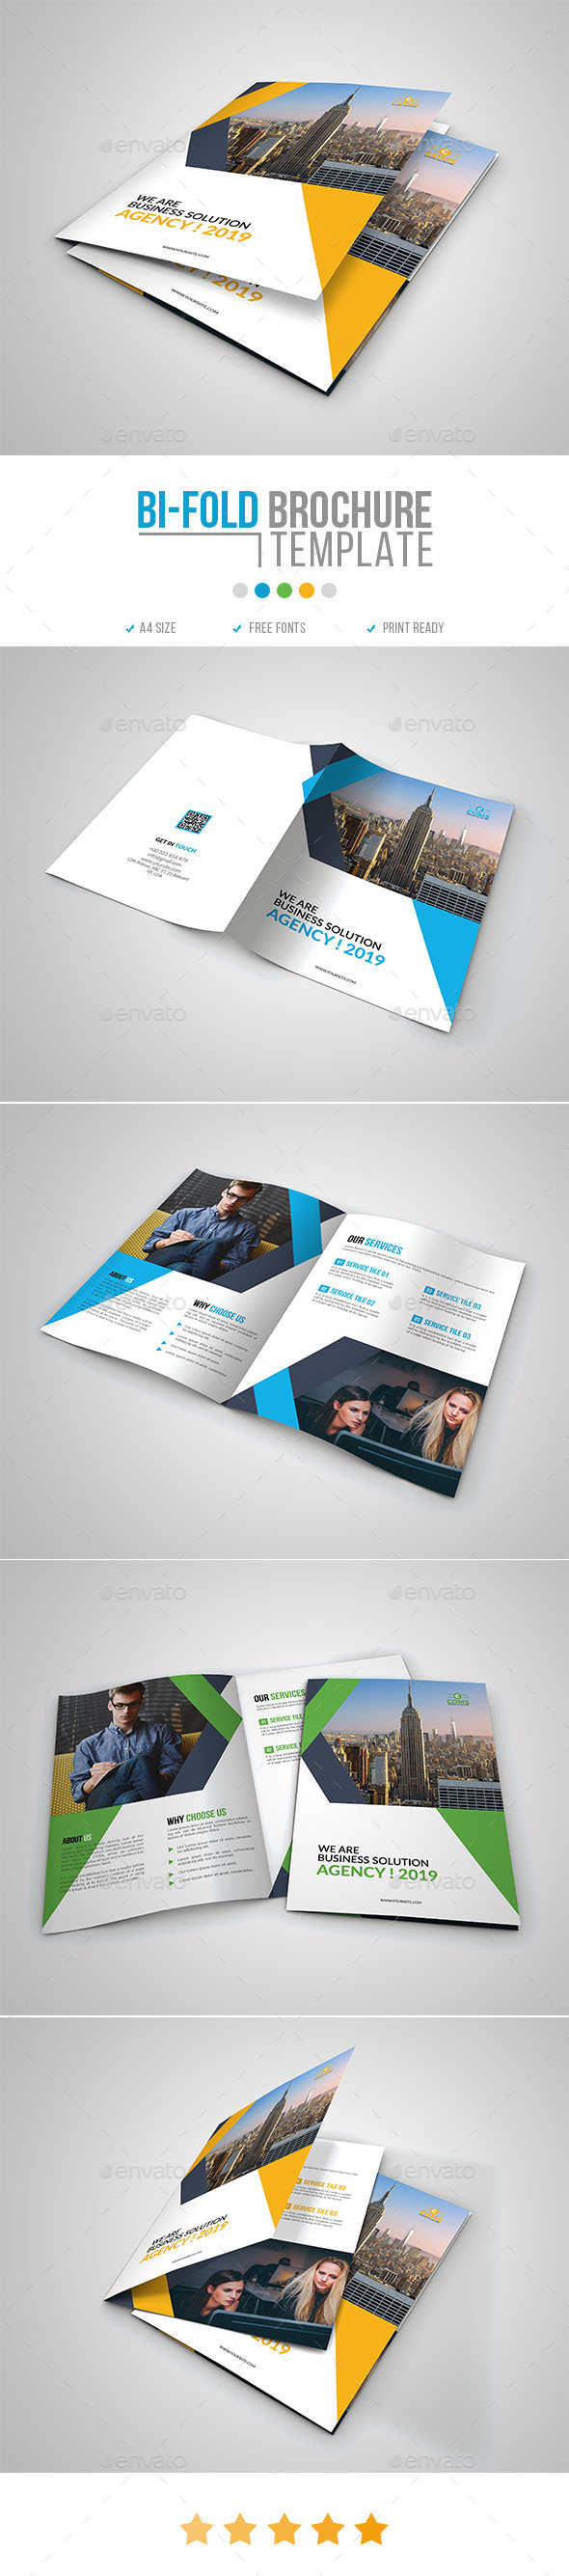 Corporate Bi-Fold Brochure Template 15 - Corporate Brochures